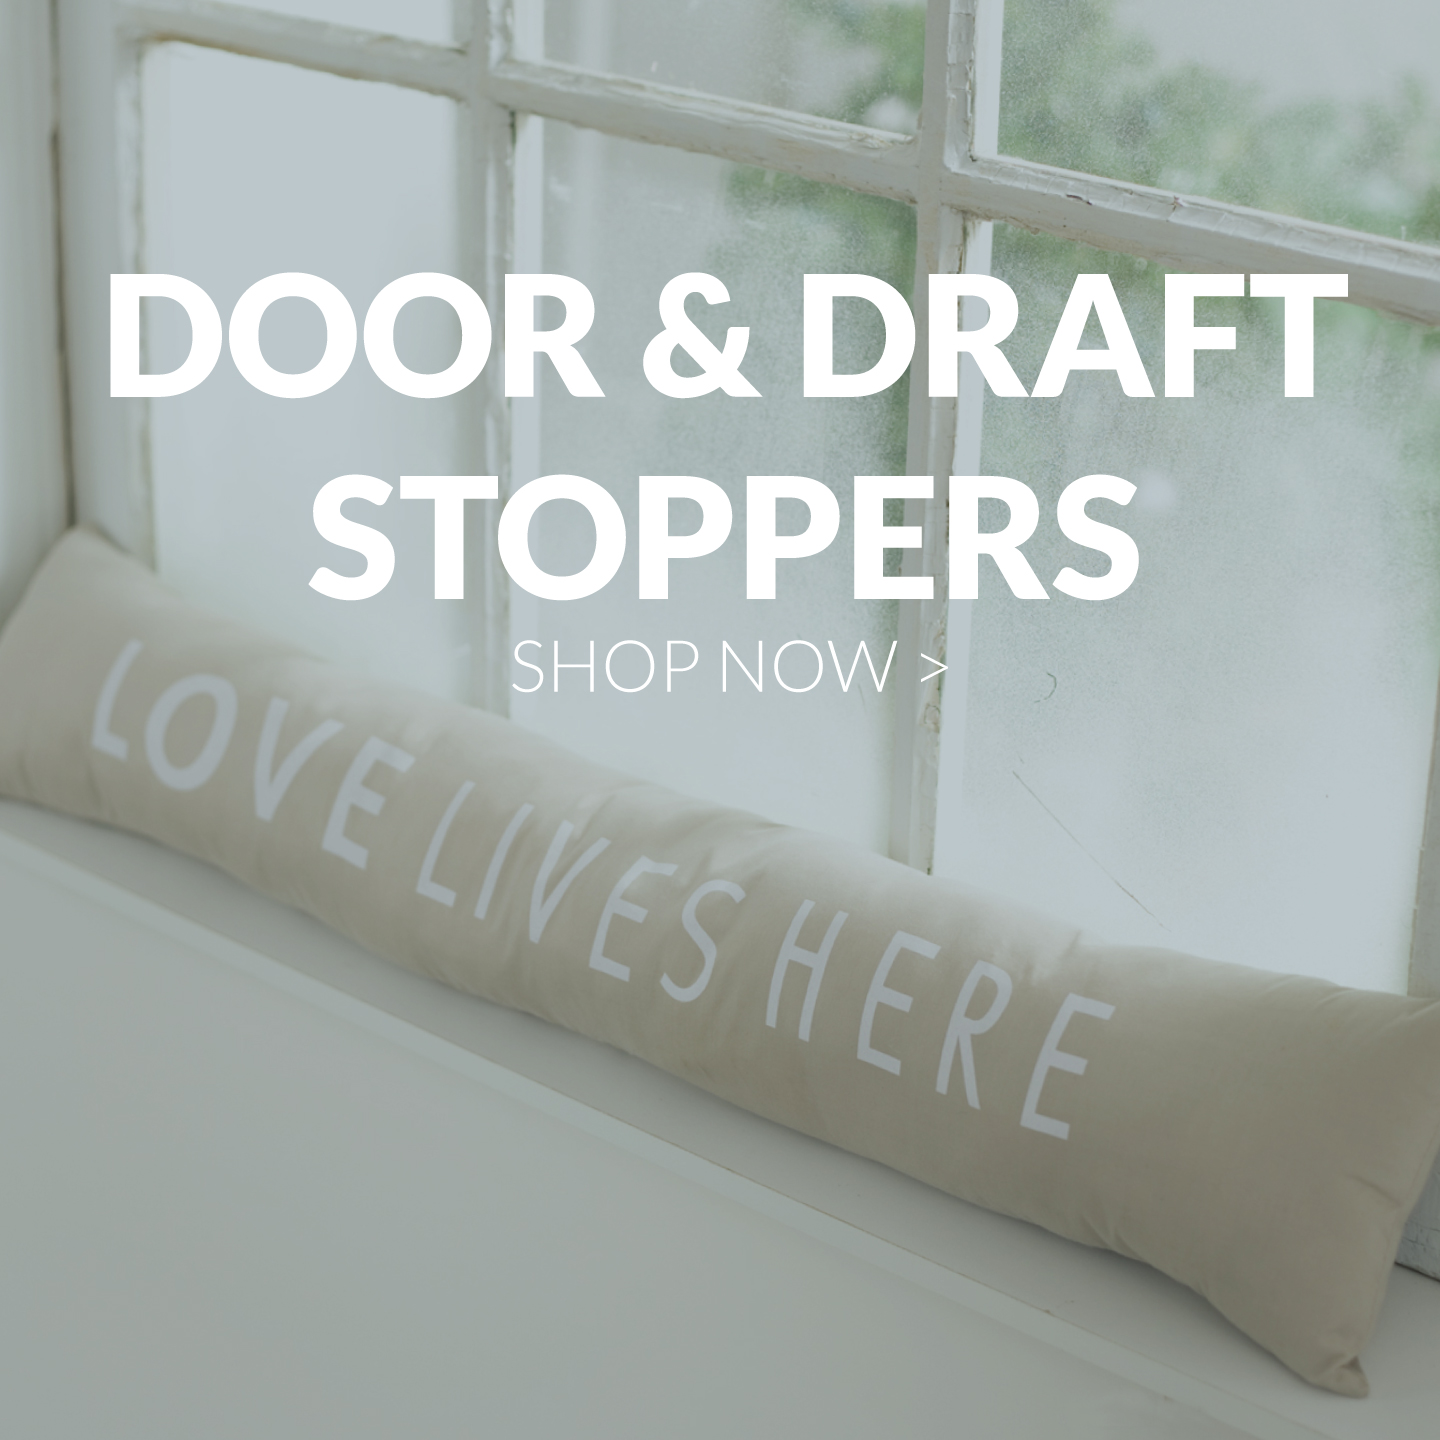 Door & Draft Stoppers